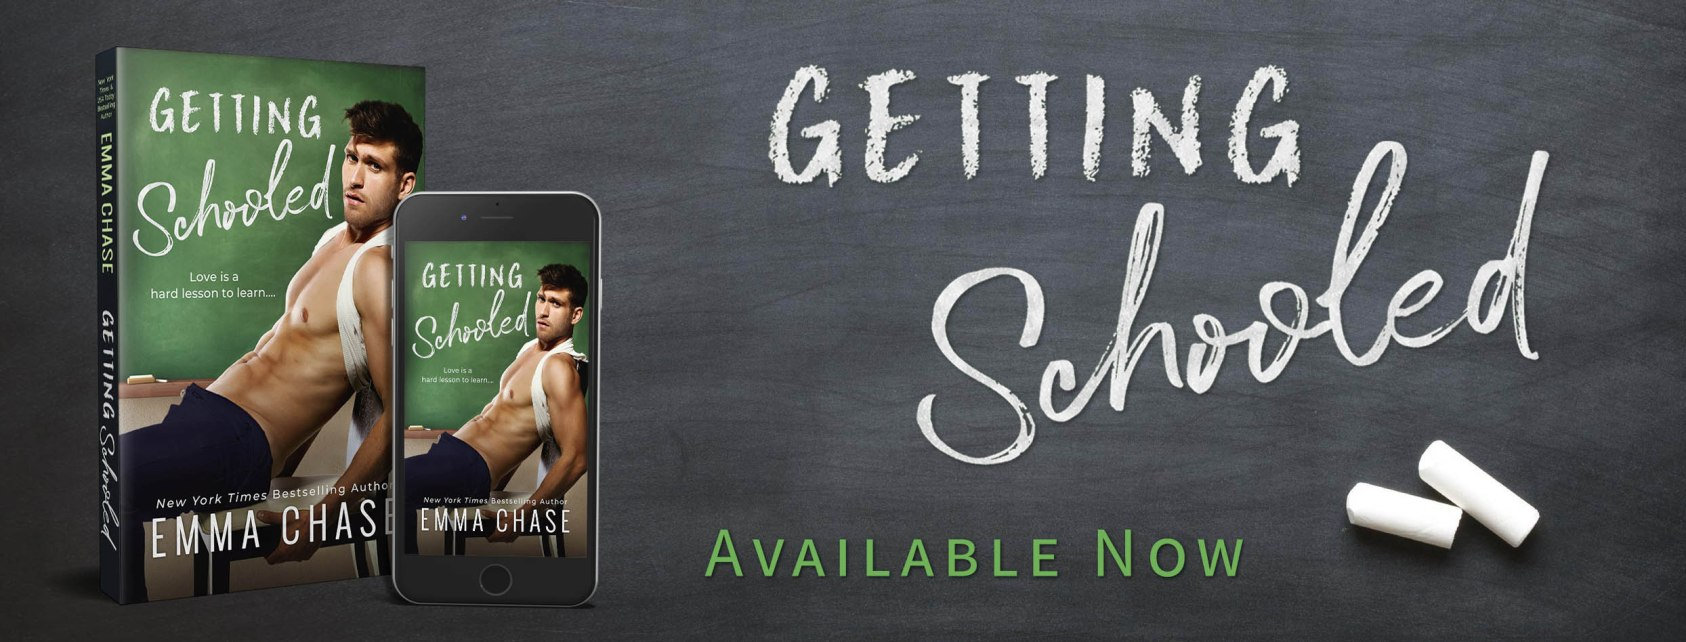 GettingSchooled availnowbanner